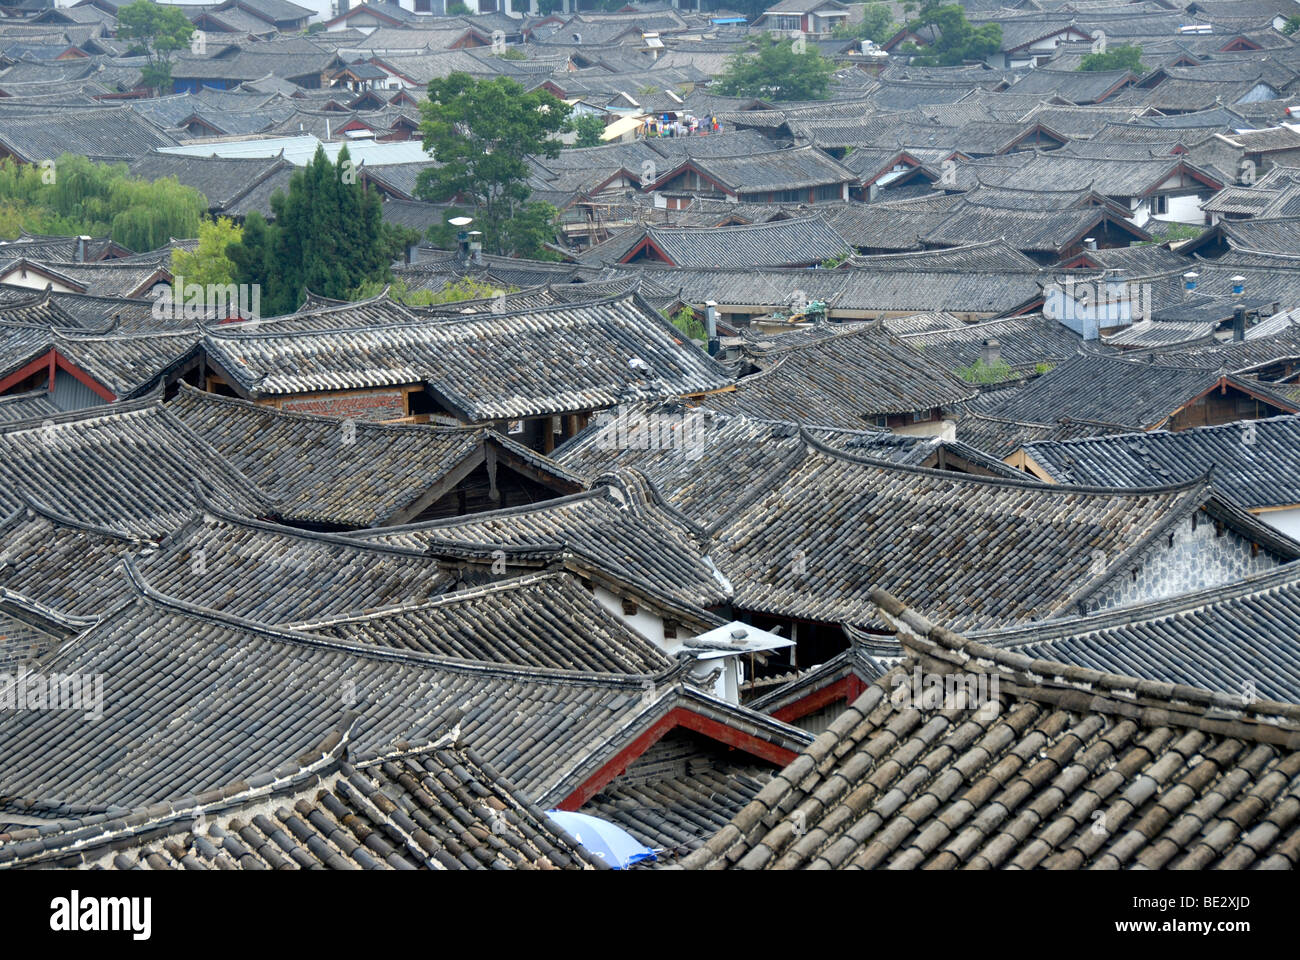 Tiled roofs, historic town of Lijiang, UNESCO World Heritage Site, Yunnan Province, People's Republic of China, Stock Photo